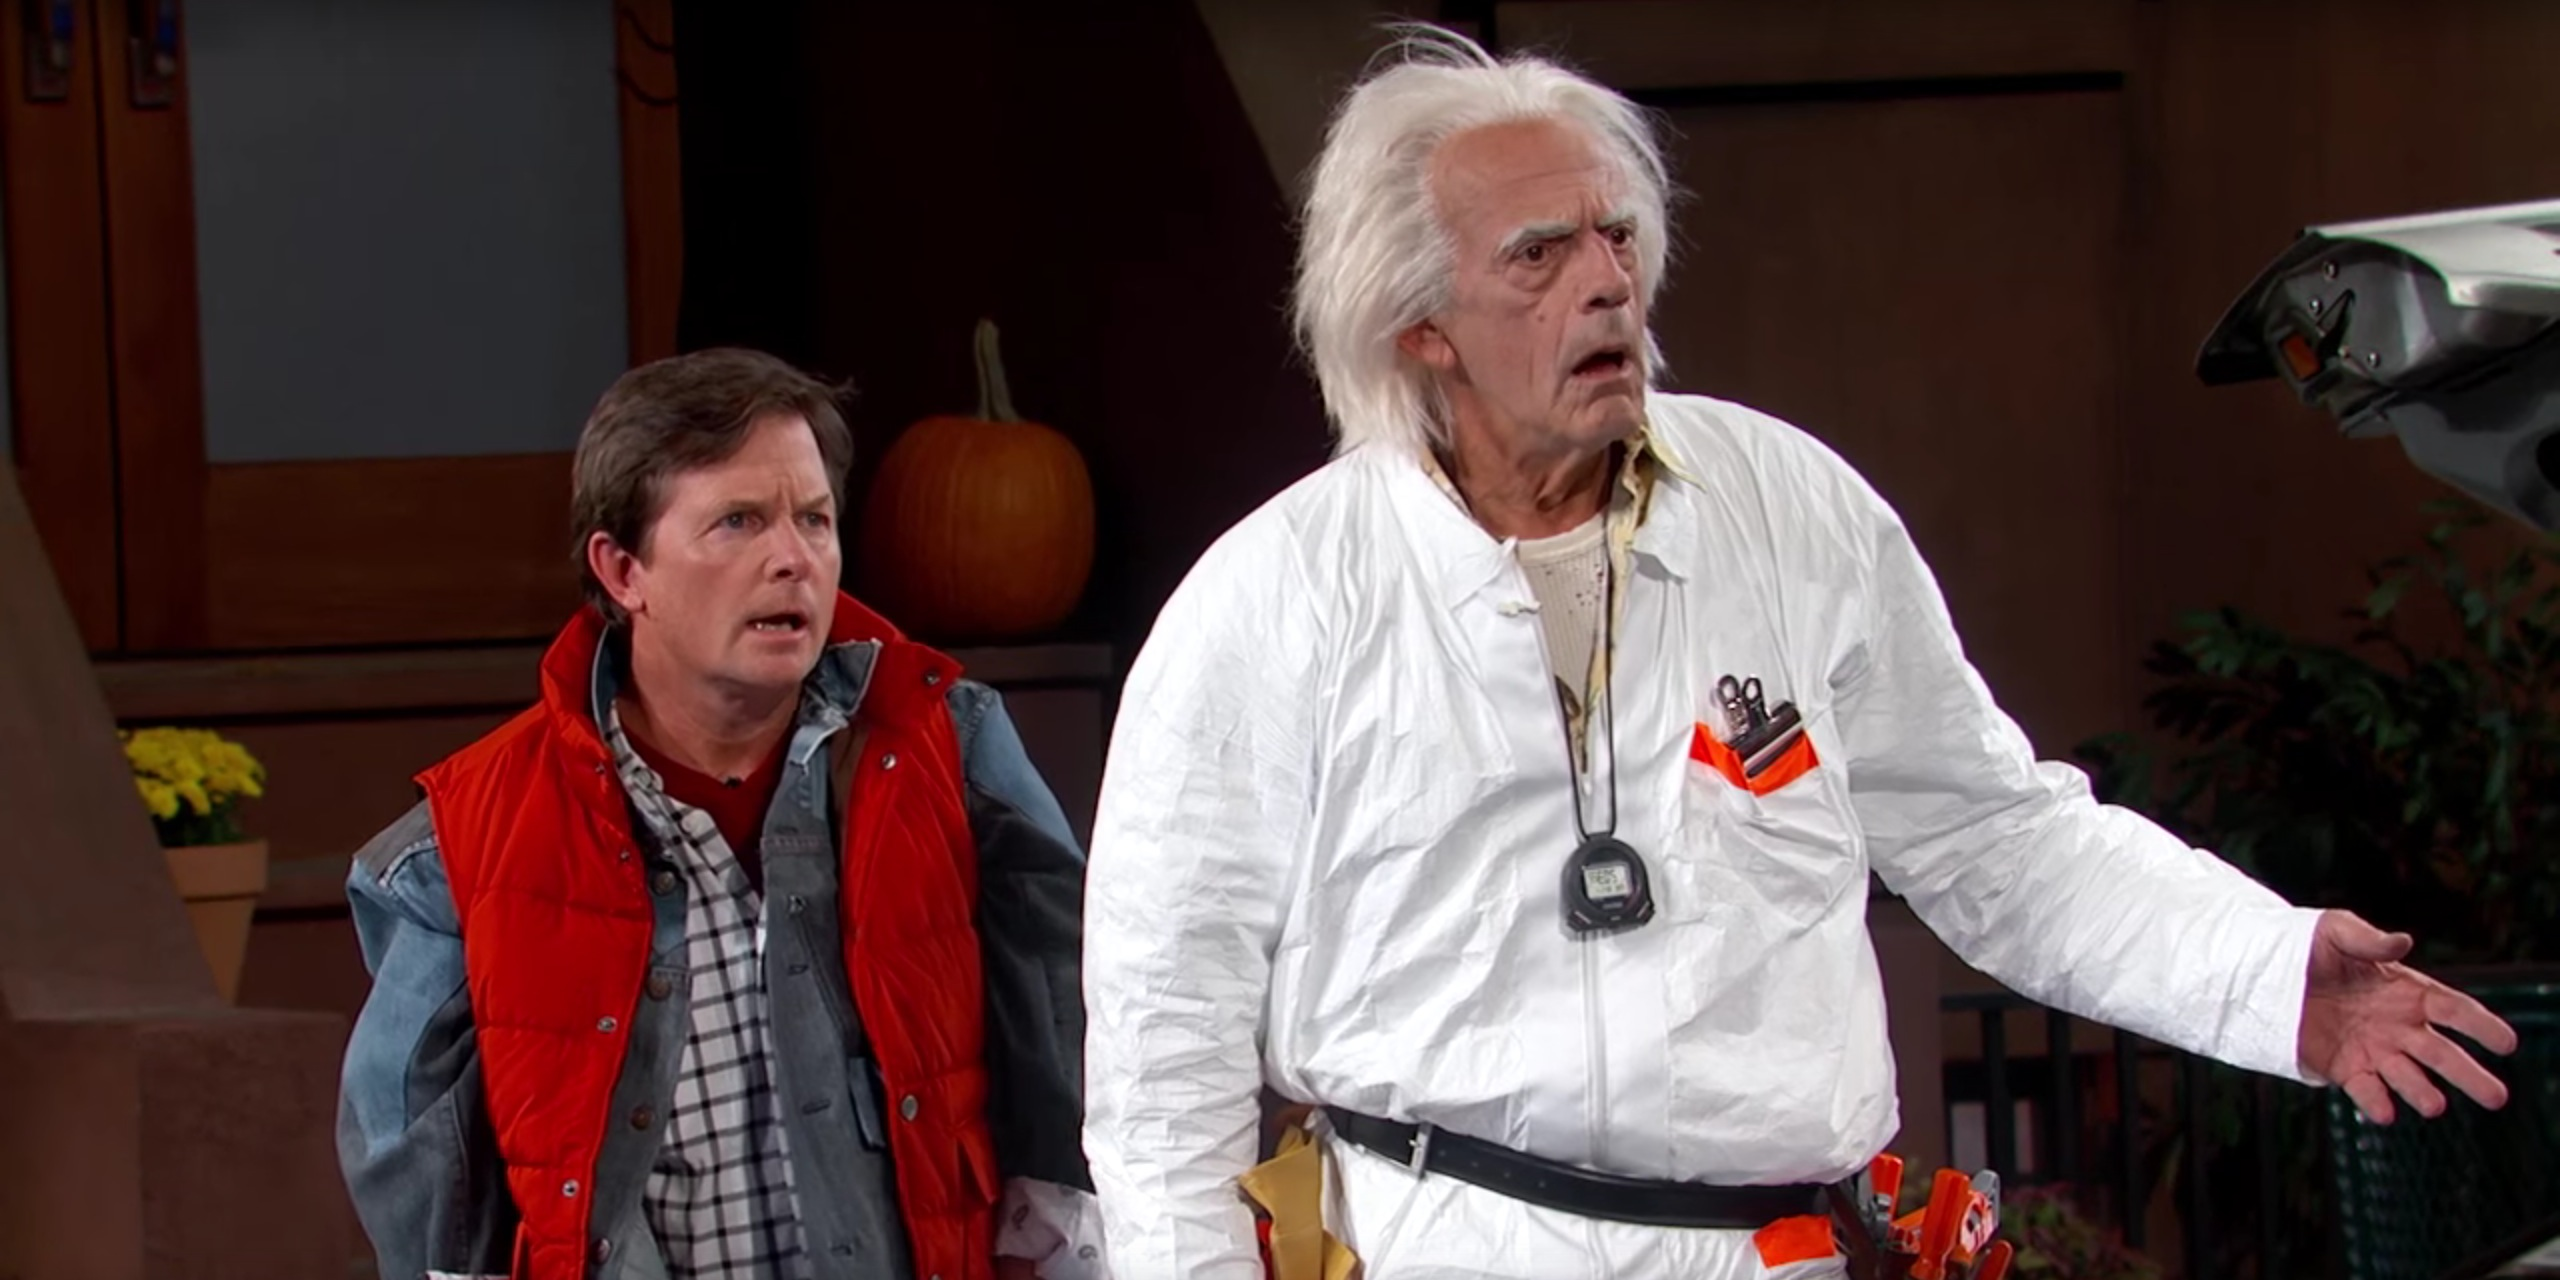 watch marty mcfly and doc brown go 'back to the future' on 'kimmel